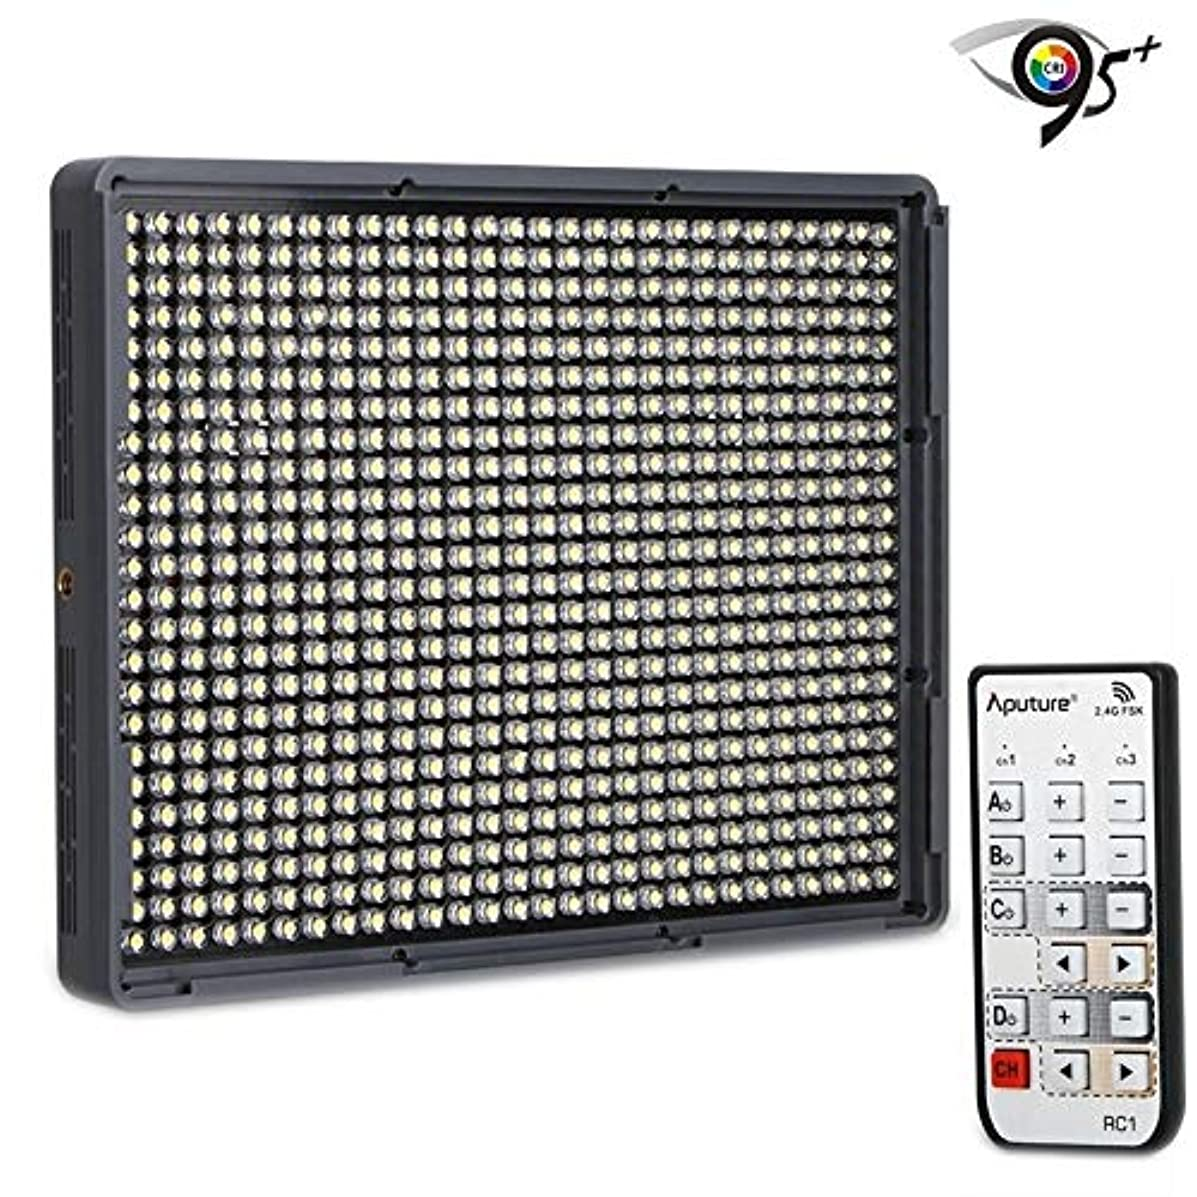 ShenBiadolr On-Camera Video Lights Amaran HR672S High CRI 95 Studio Video Light LED Photo Light Adjustable Light with 2.4GHz Wireless Remote Flicker Free